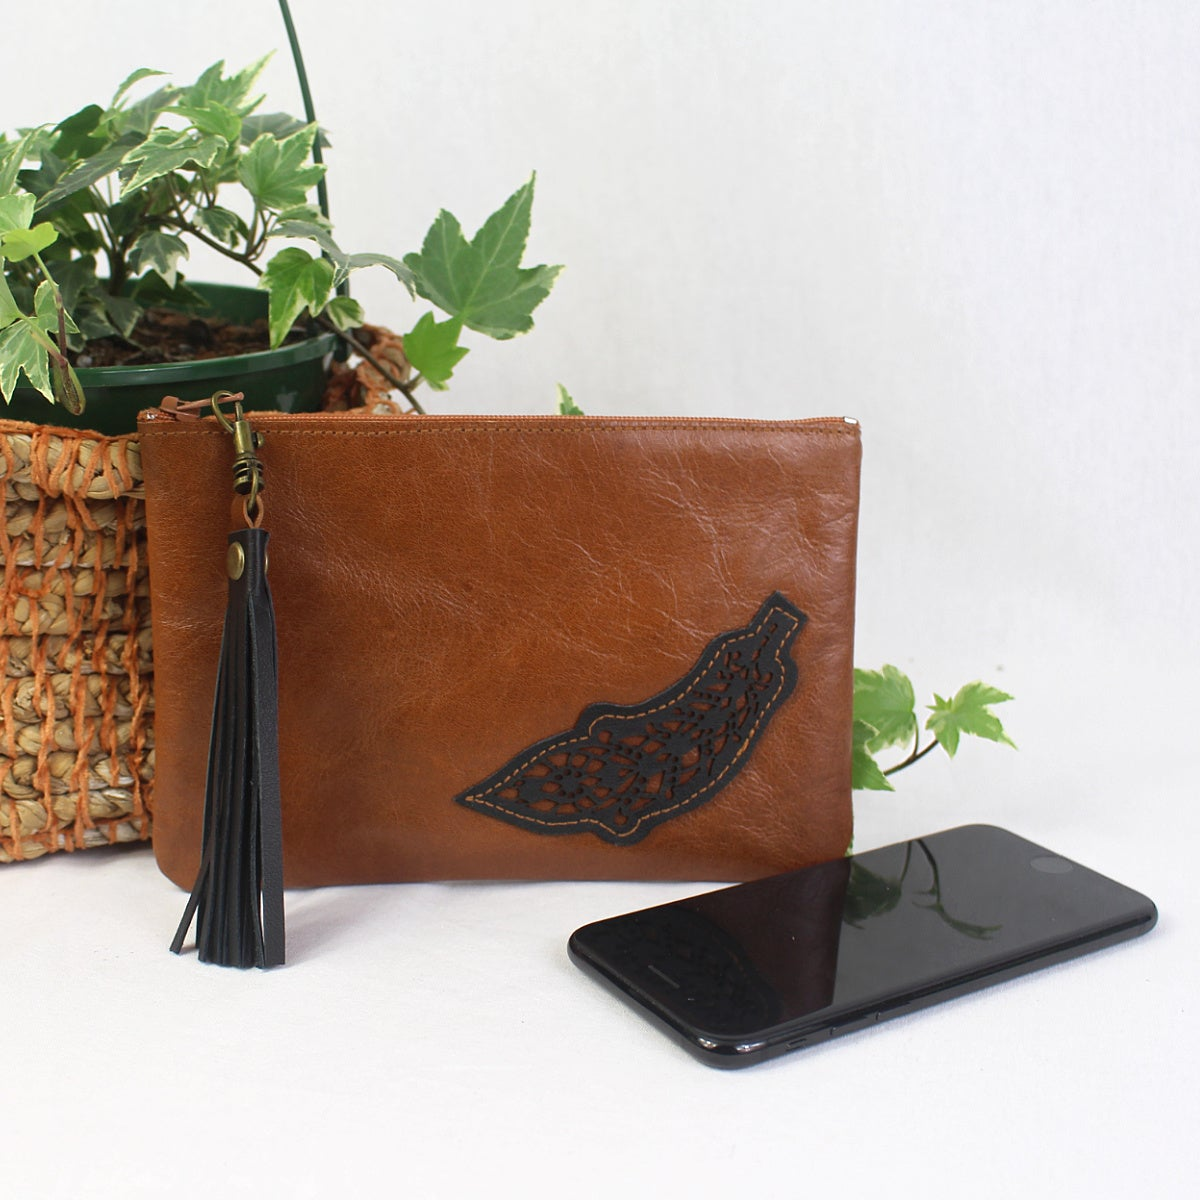 Image of Leather Phone Purse - Feather Tan